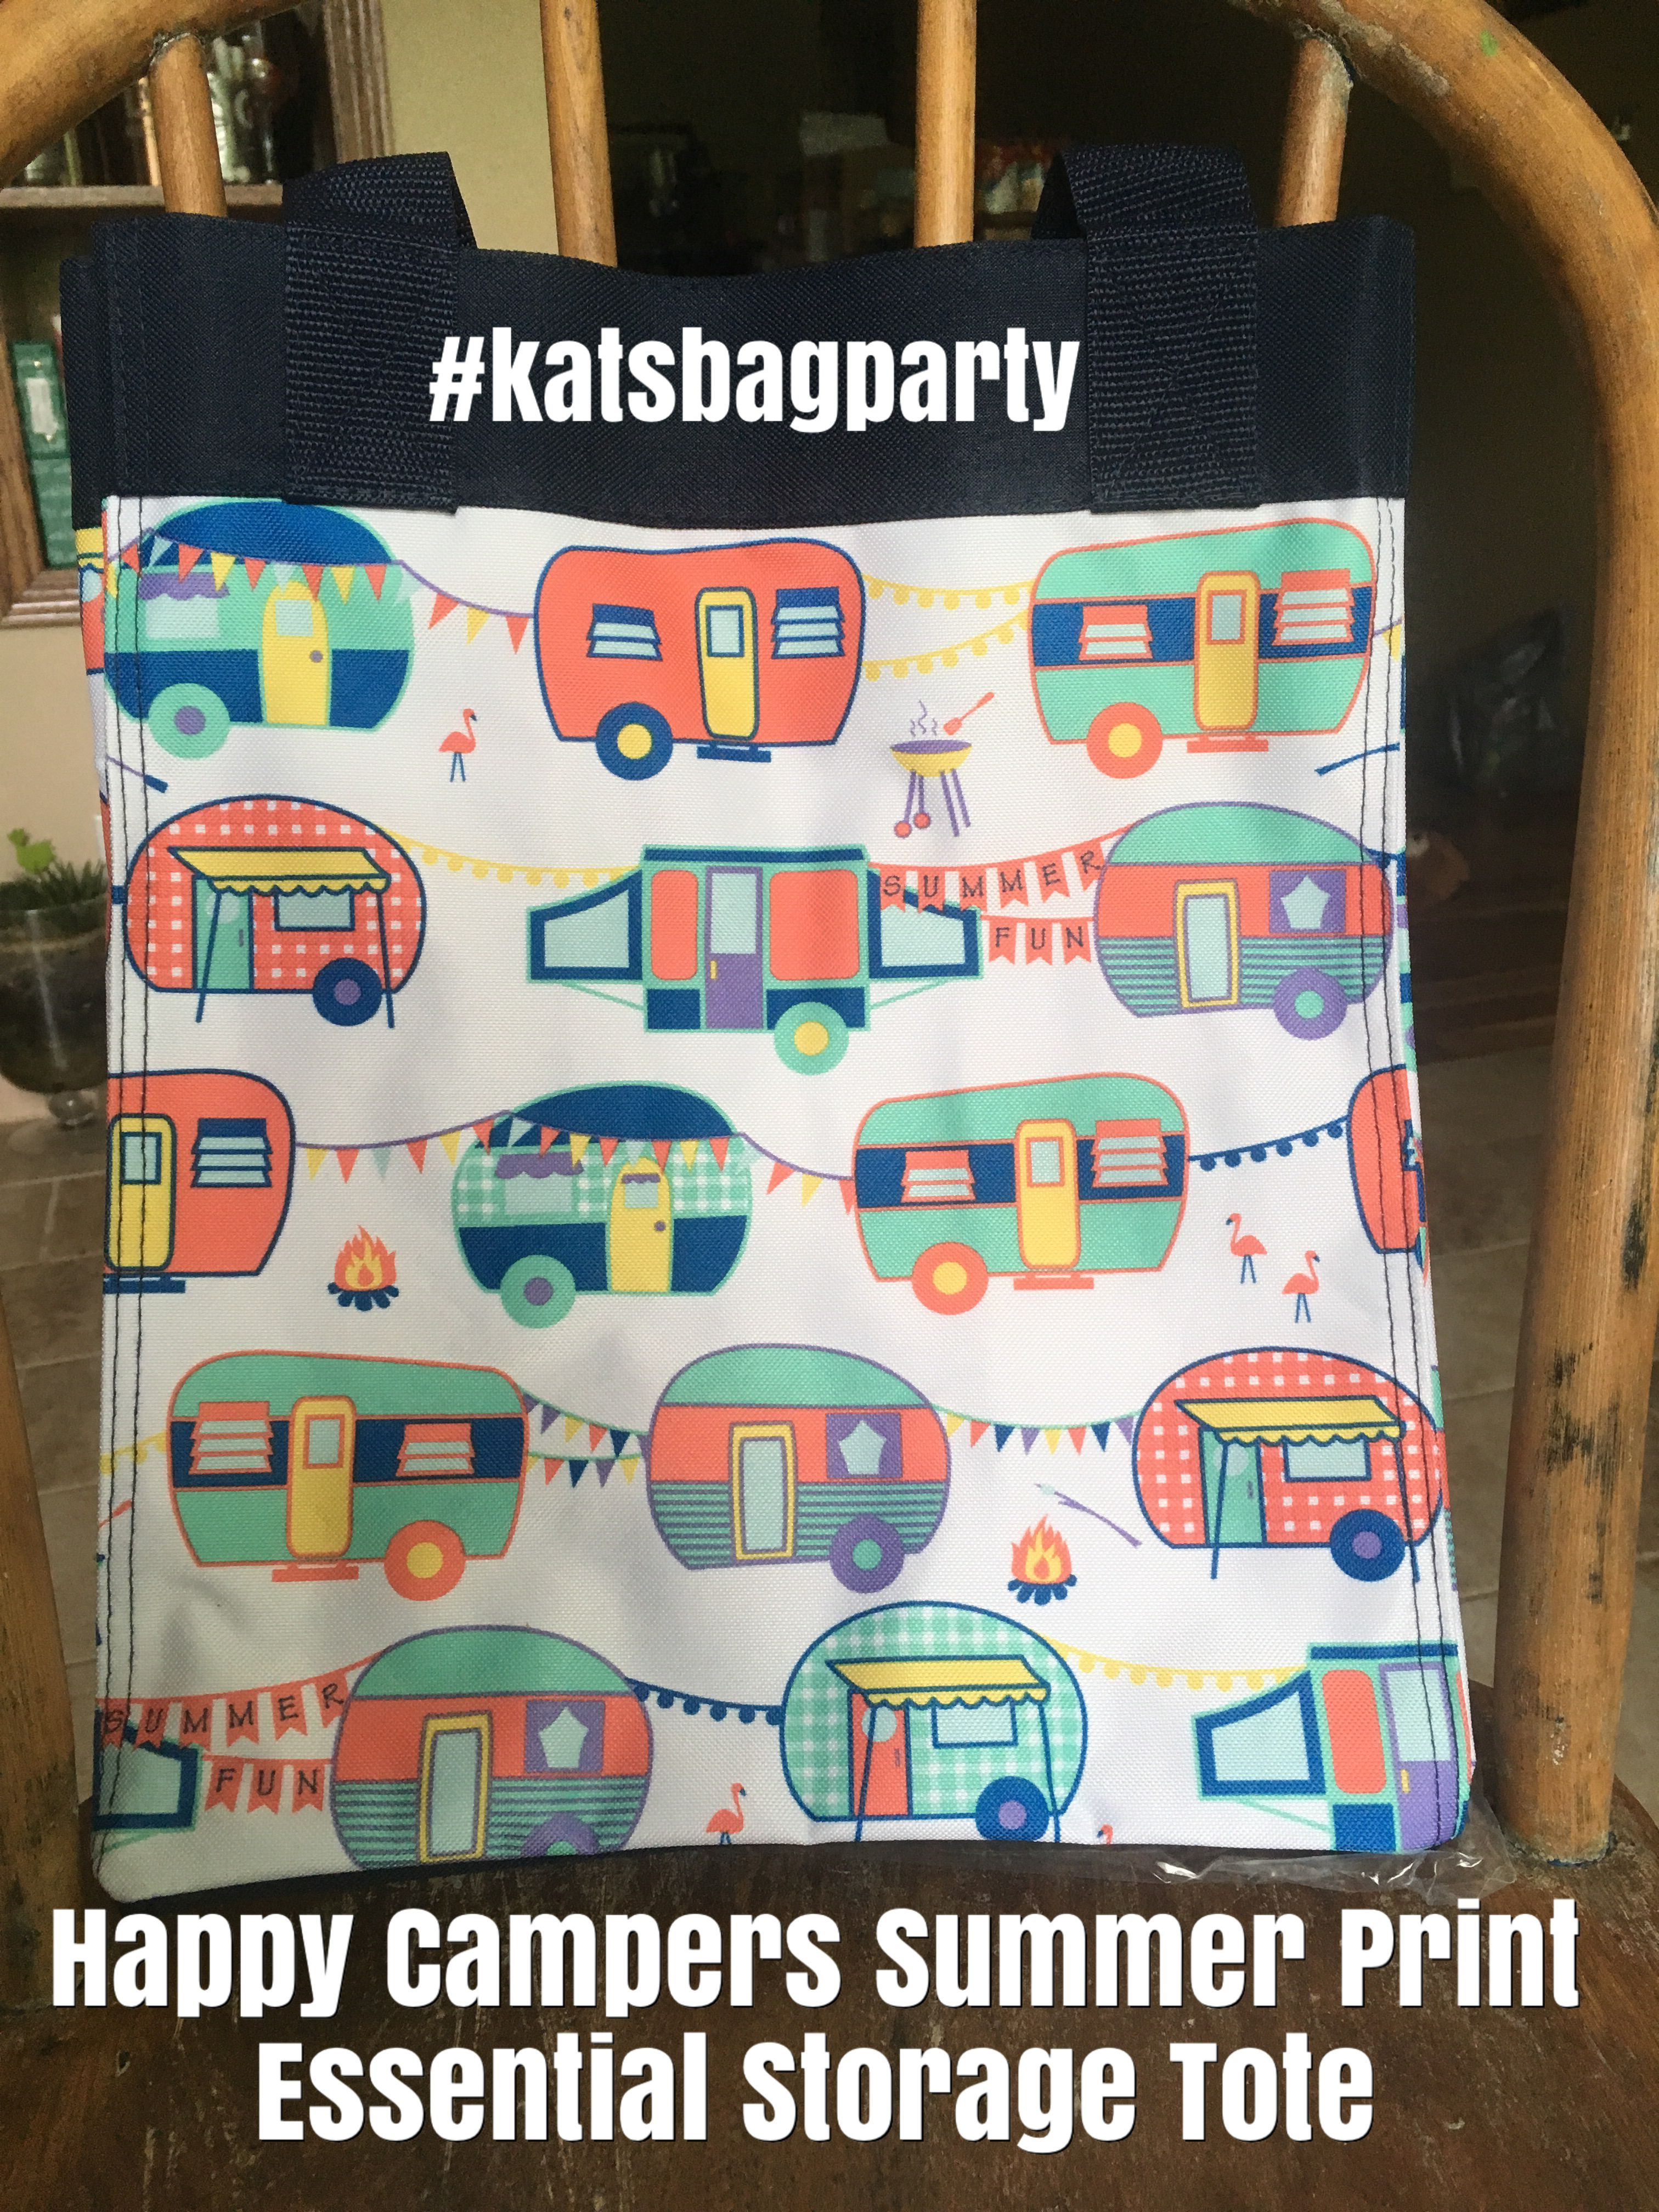 Essential Storage Tote Thirty One Gifts Happy Campers Summer Print Katsbagparty